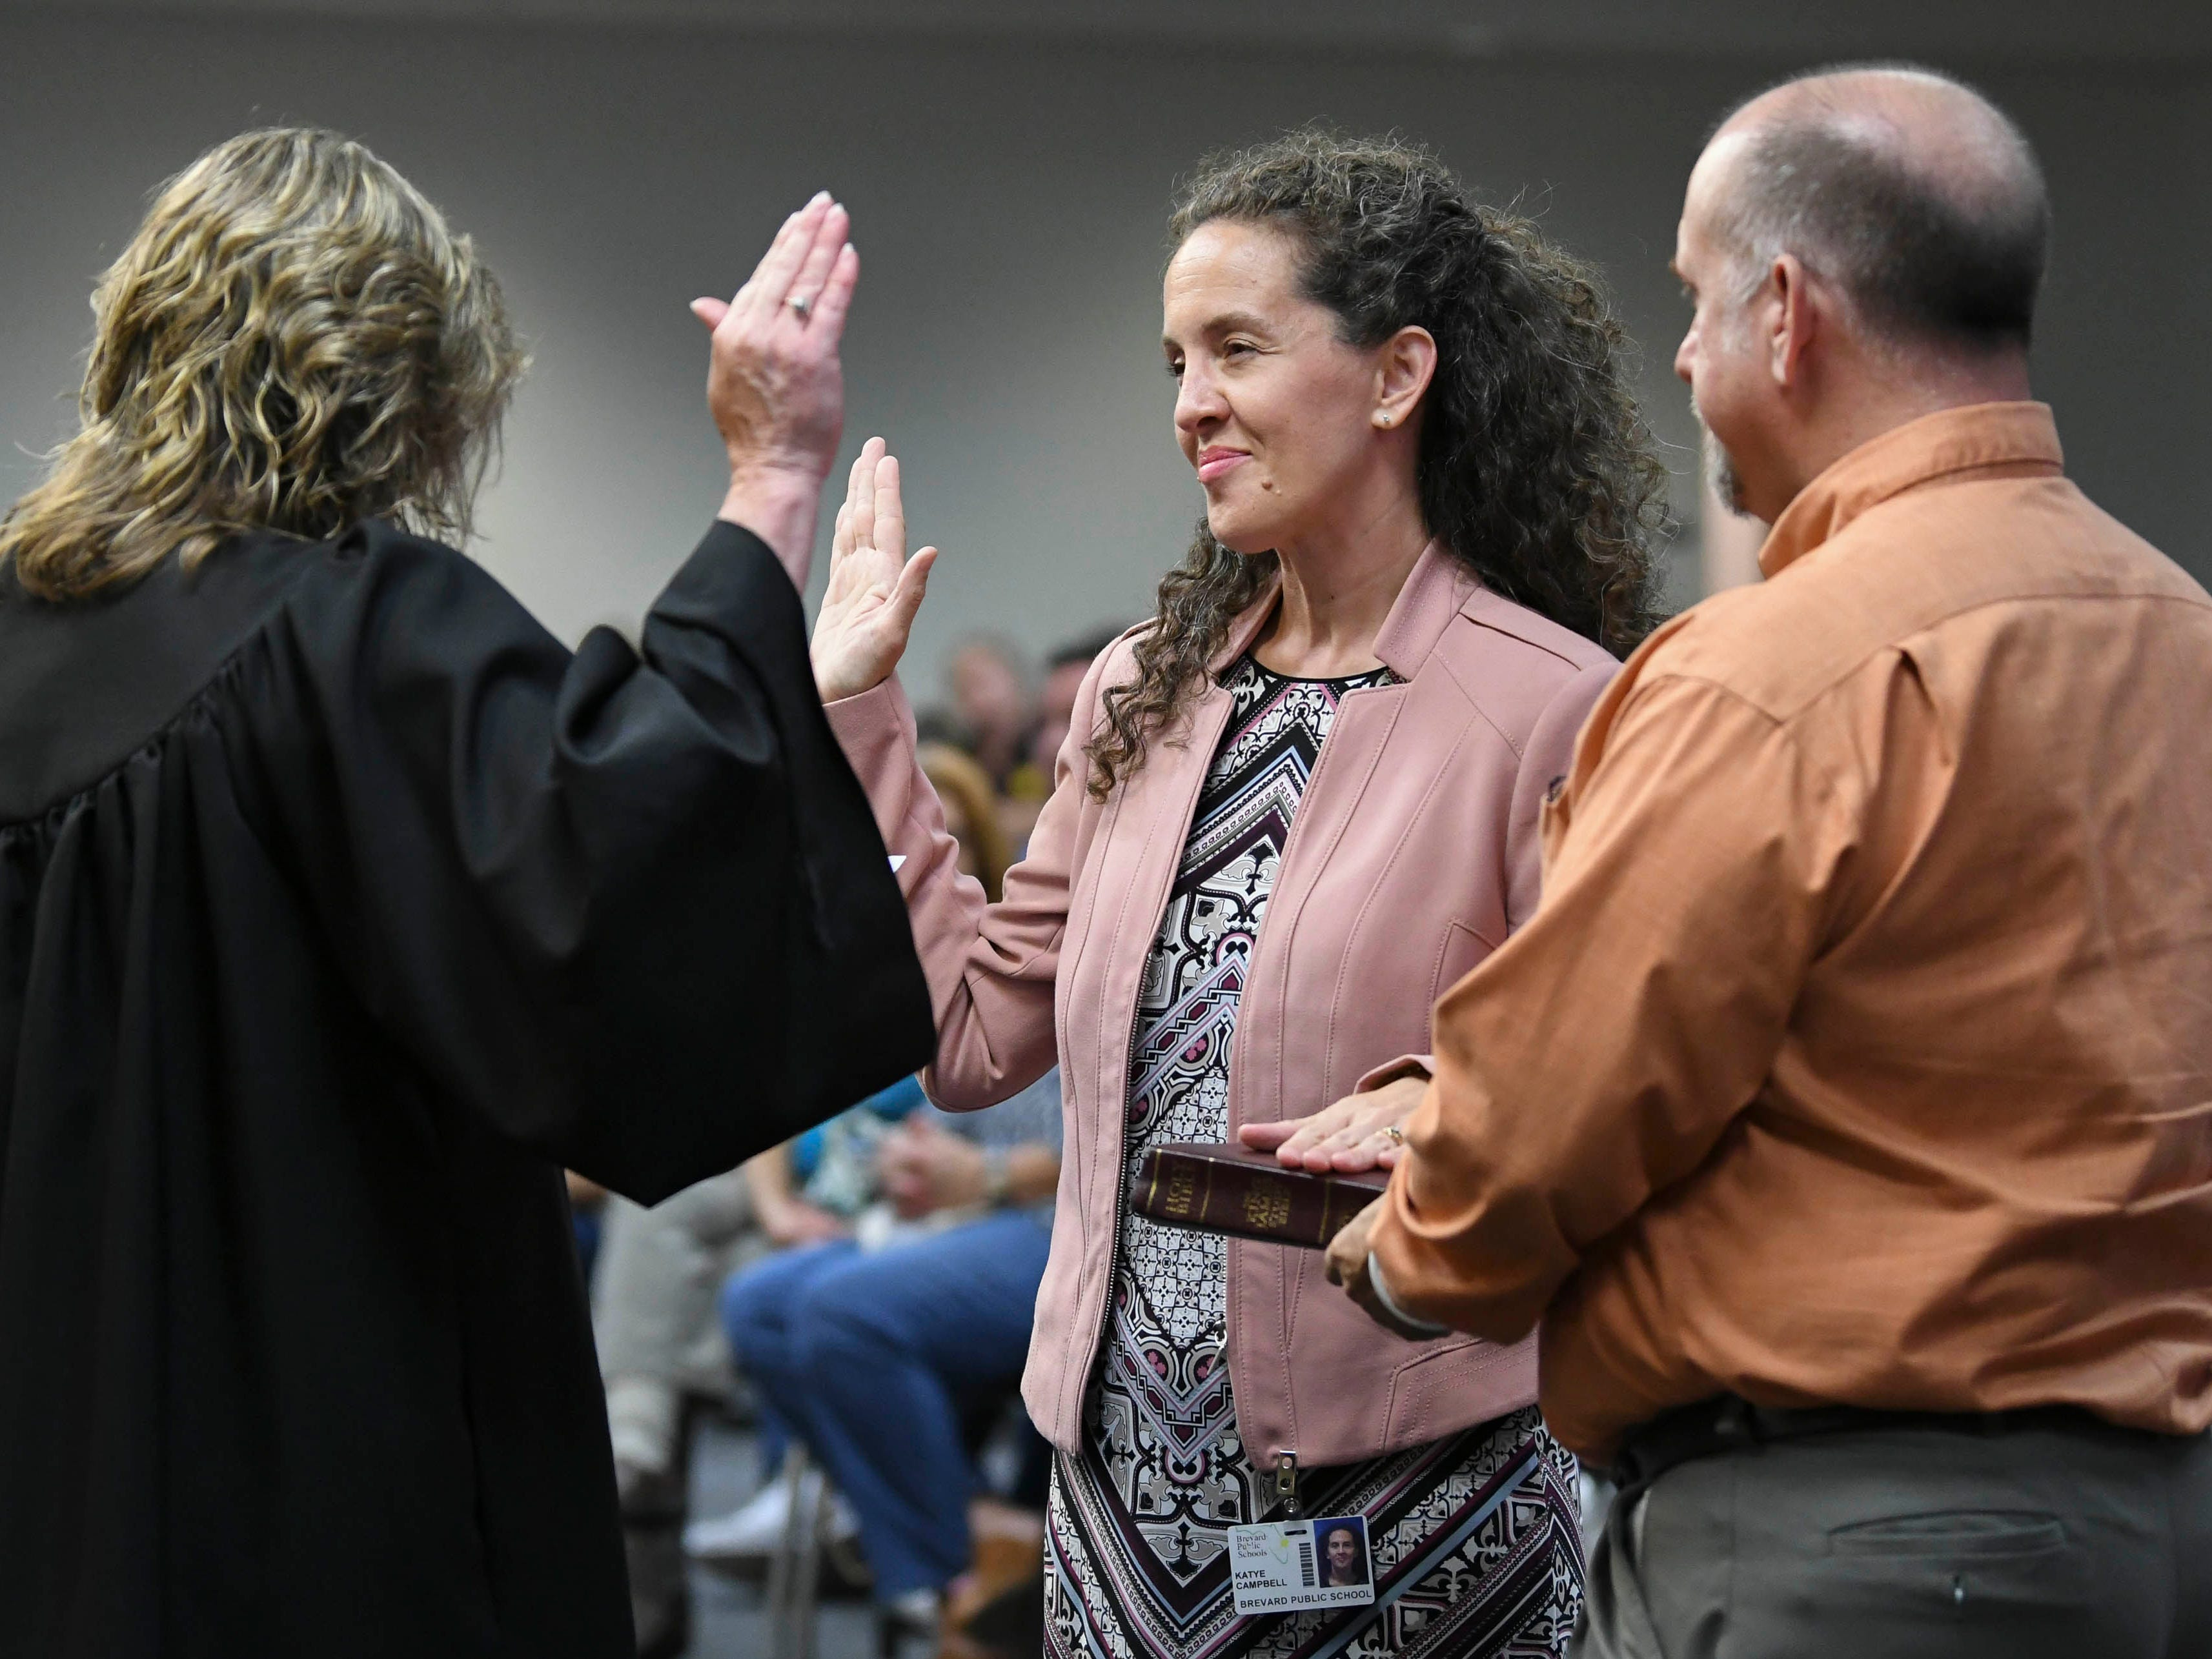 Judge Kelly McKibben swears in Katye Campbell as a new member of the Brevard County School Board during Tuesday's meeting in Viera.